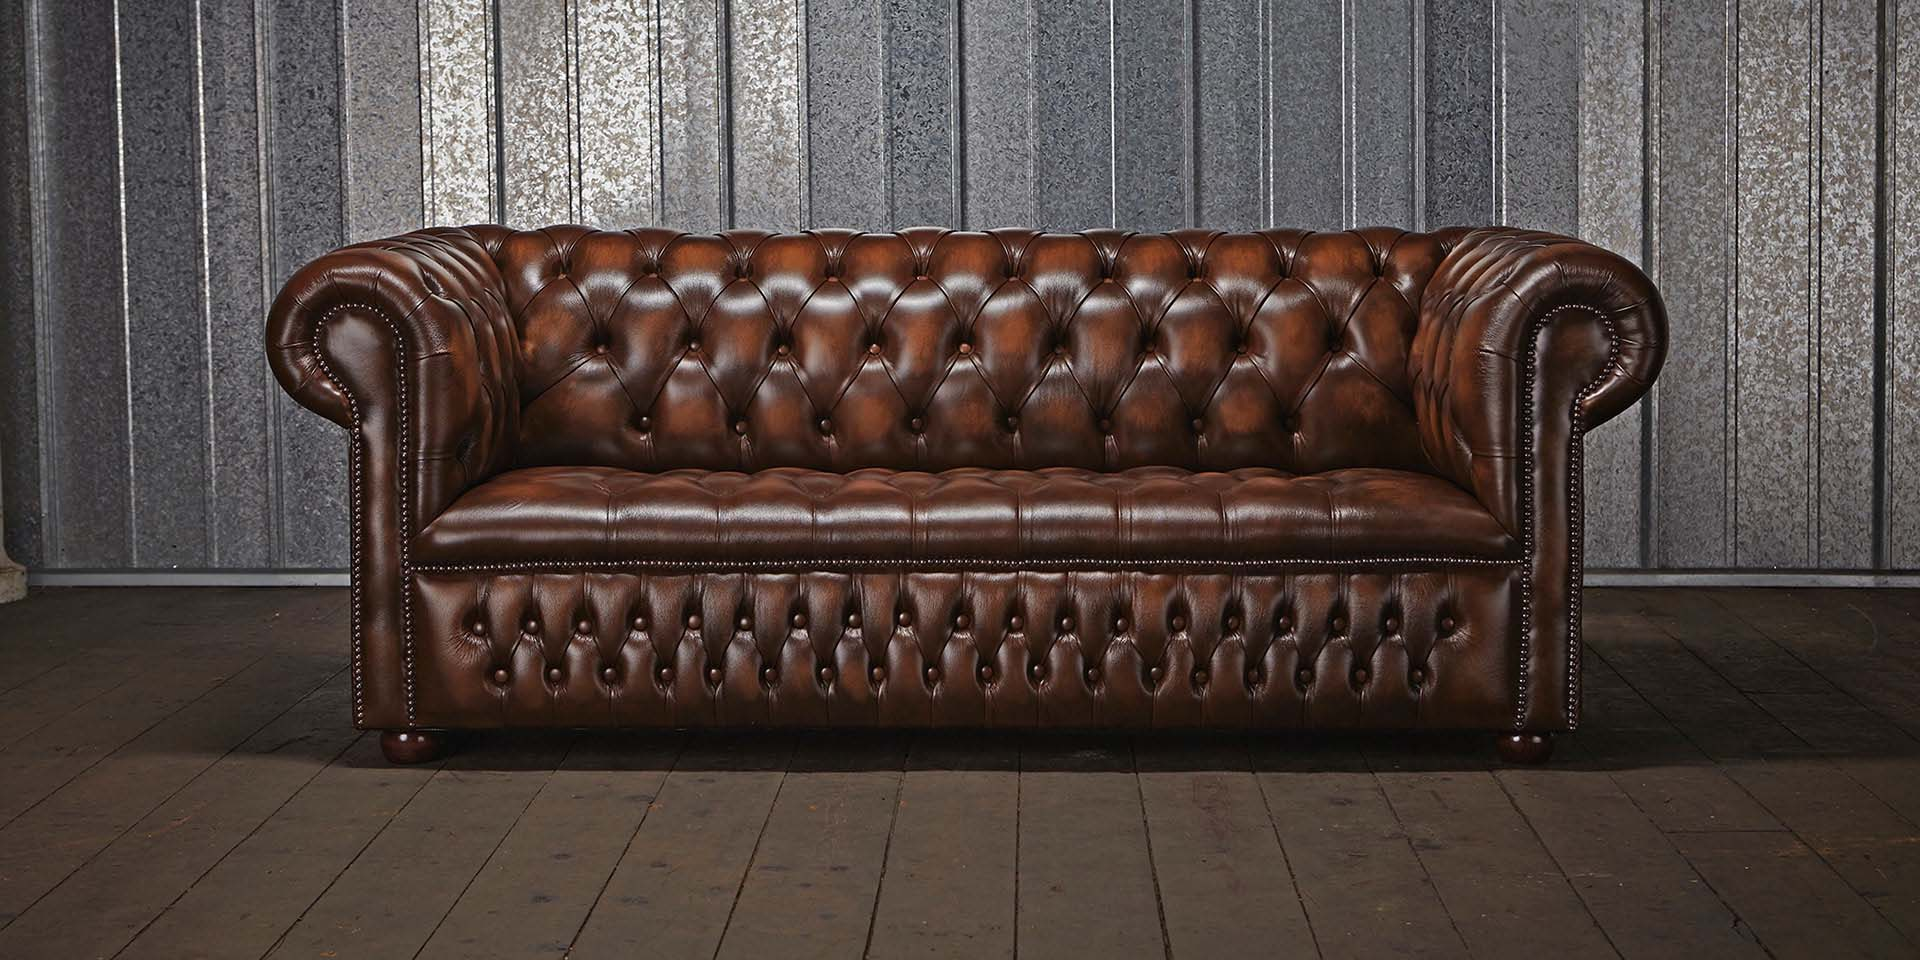 Modern leather chesterfield sofa from: £807.1click here to buy. the chelsea chesterfield sofa rfsciim